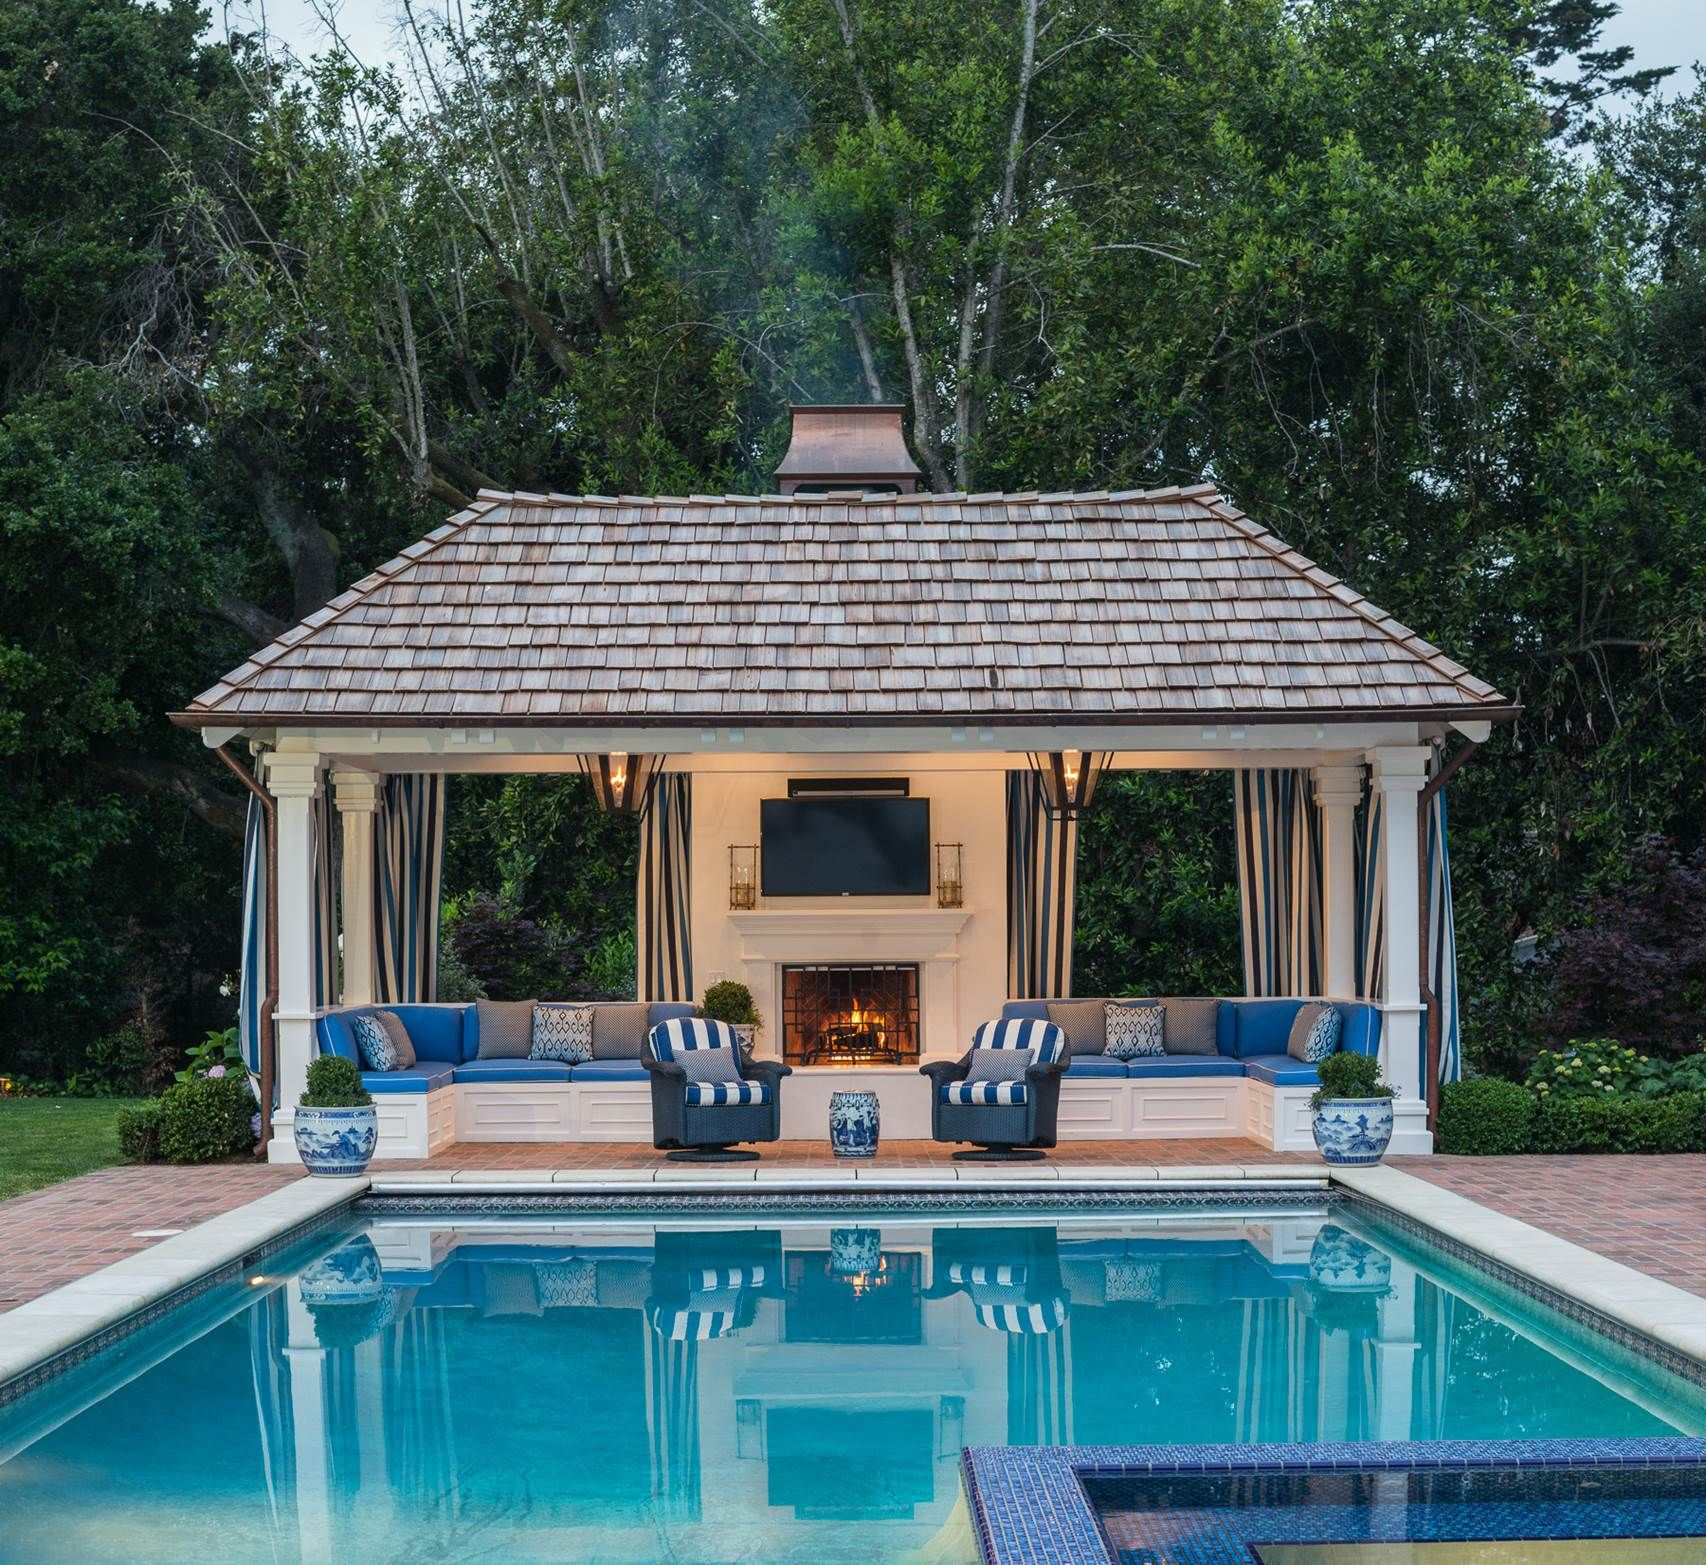 Pin by Amy Underwood on Outdoor Spaces and Pools | Pool ... on Cabana Designs Ideas id=96916